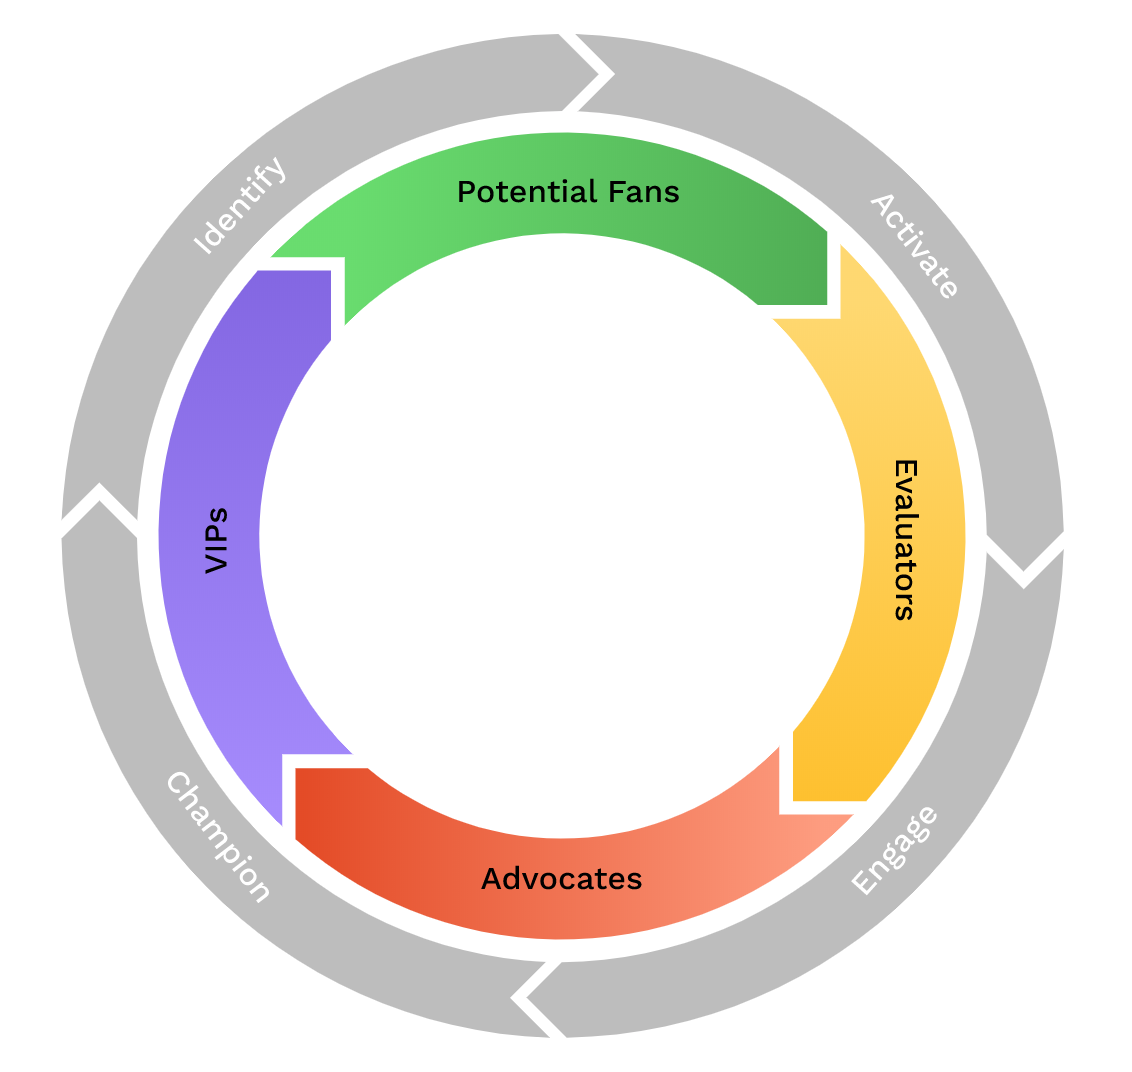 A flywheel graphic showing the four influencer community groups: Potential Fans, Evaluators, Advocates, and VIPs.